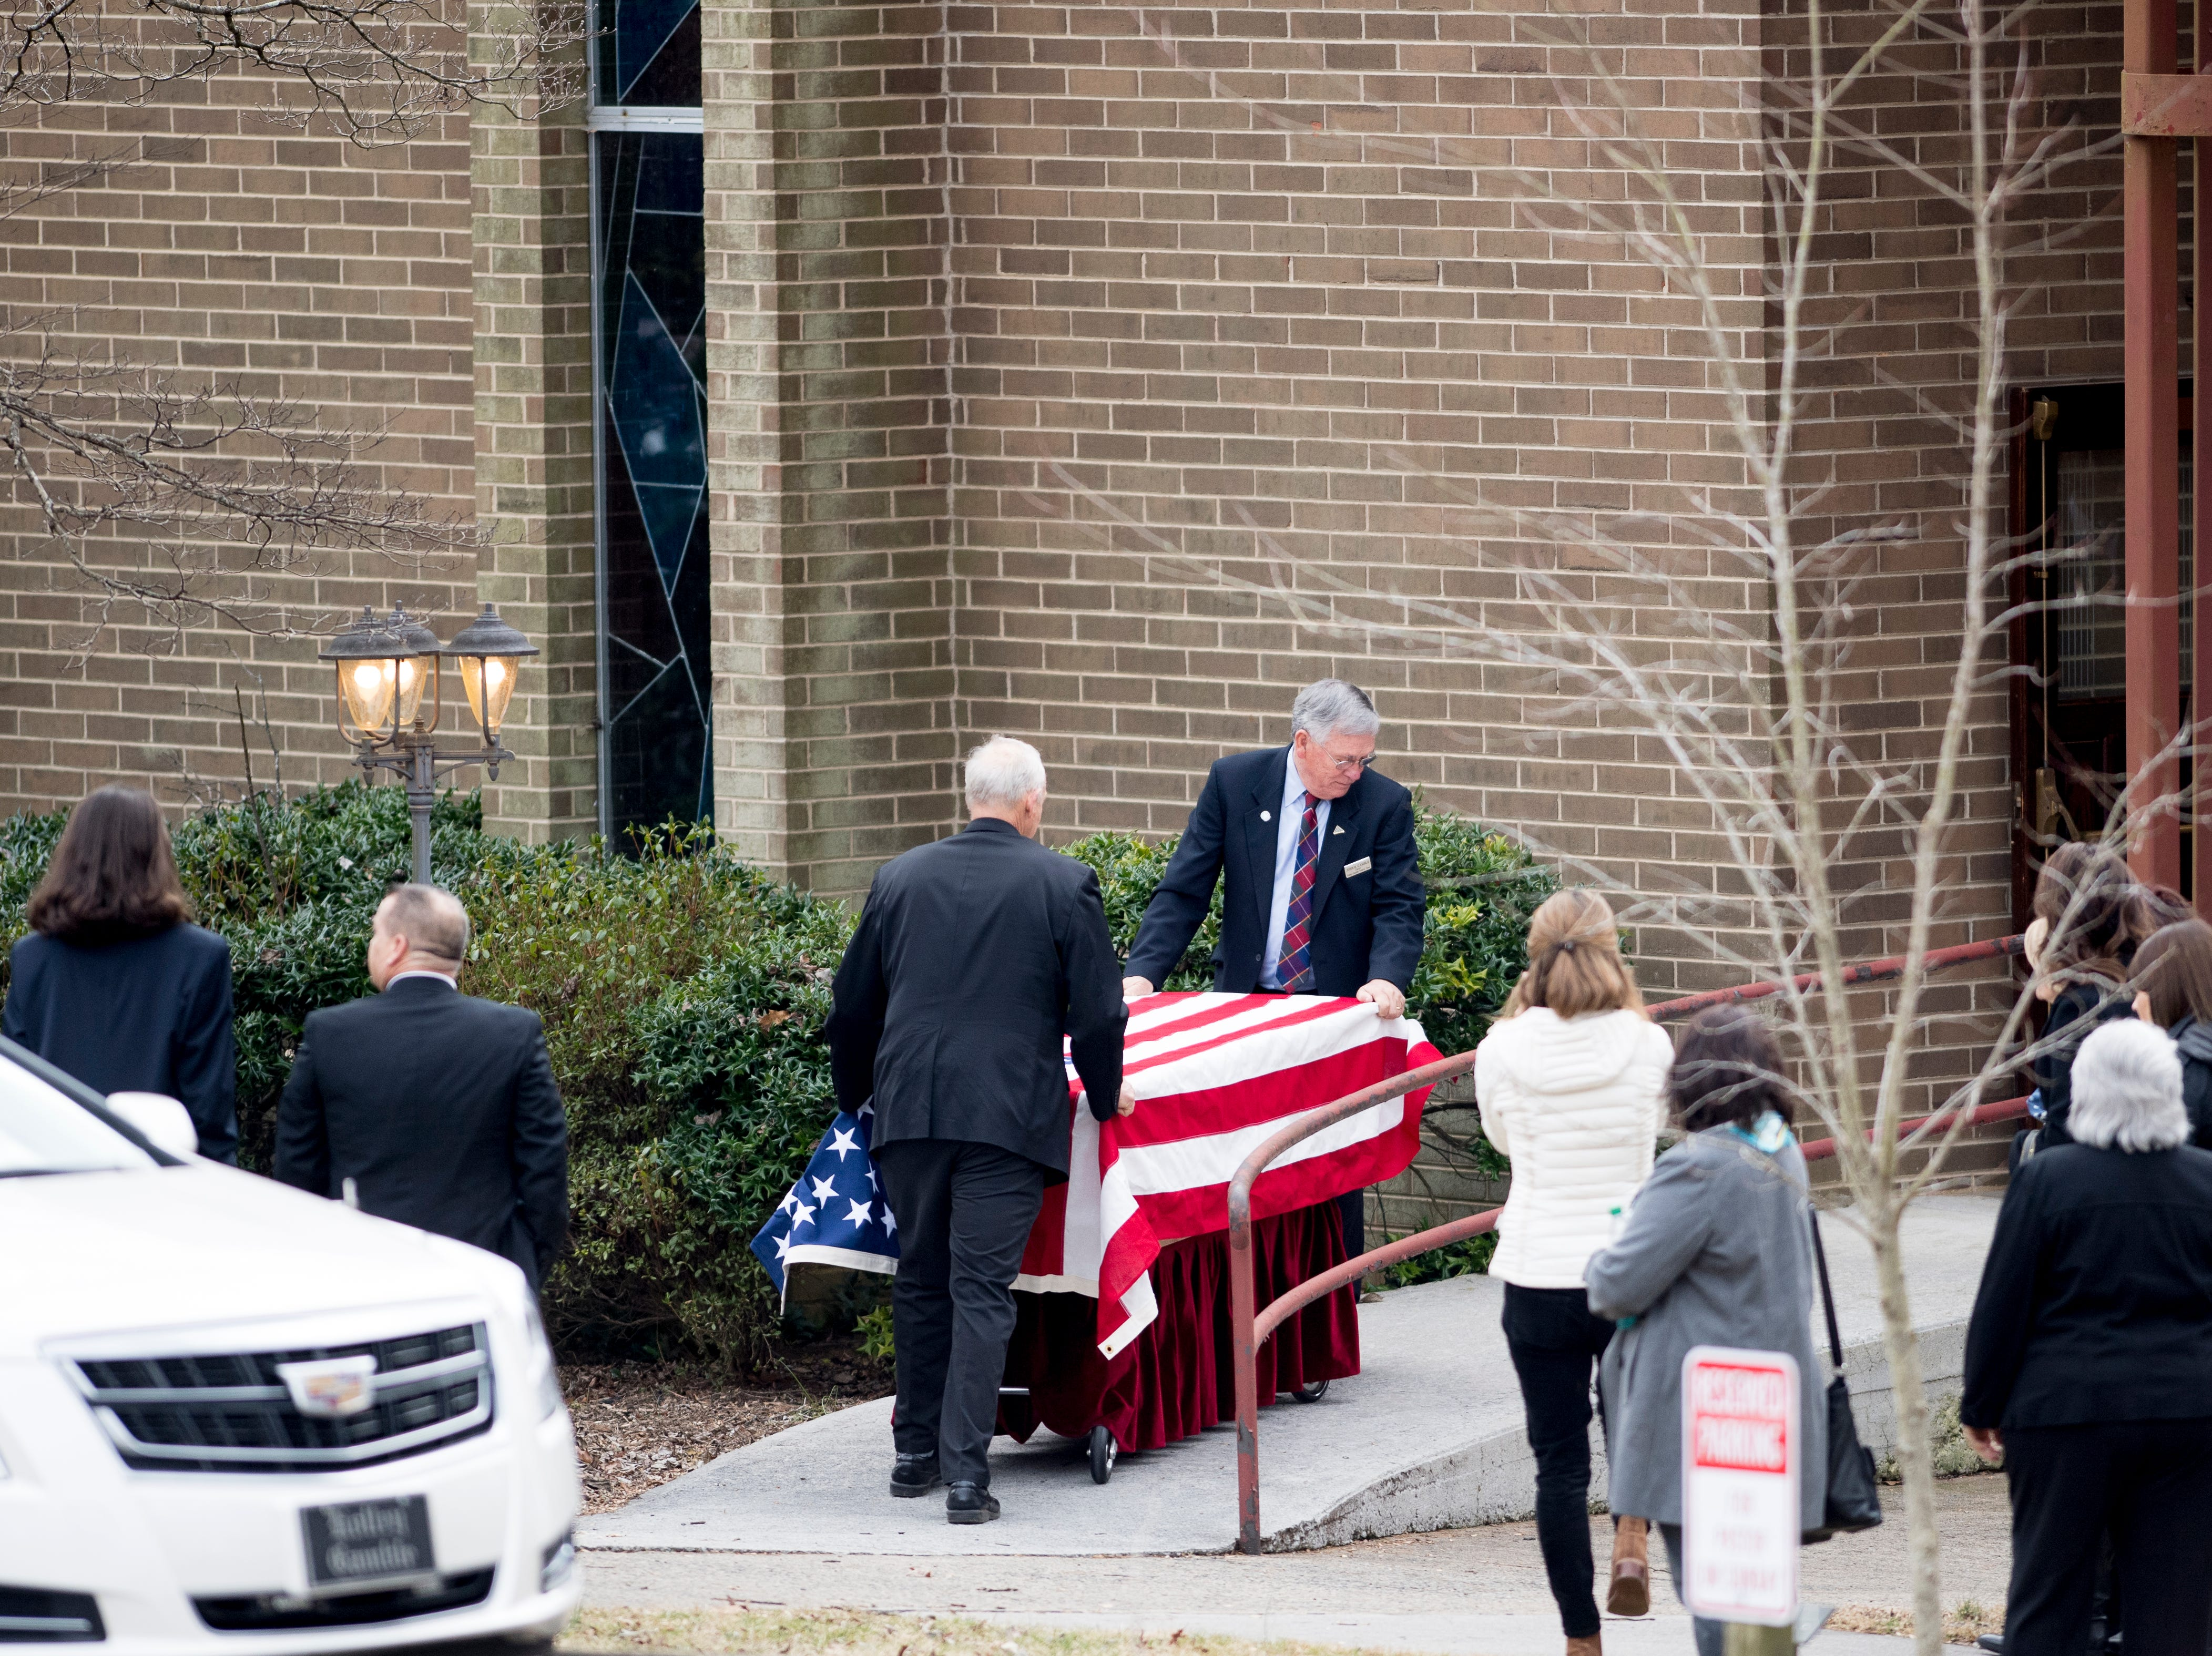 Pallbearers bring the casket of Rosemary Mariner, the US Navy's first female fighter pilot, into Norris United Methodist Church in Norris, Tennessee on Saturday, February 2, 2019. Mariner died January 24th of cancer.